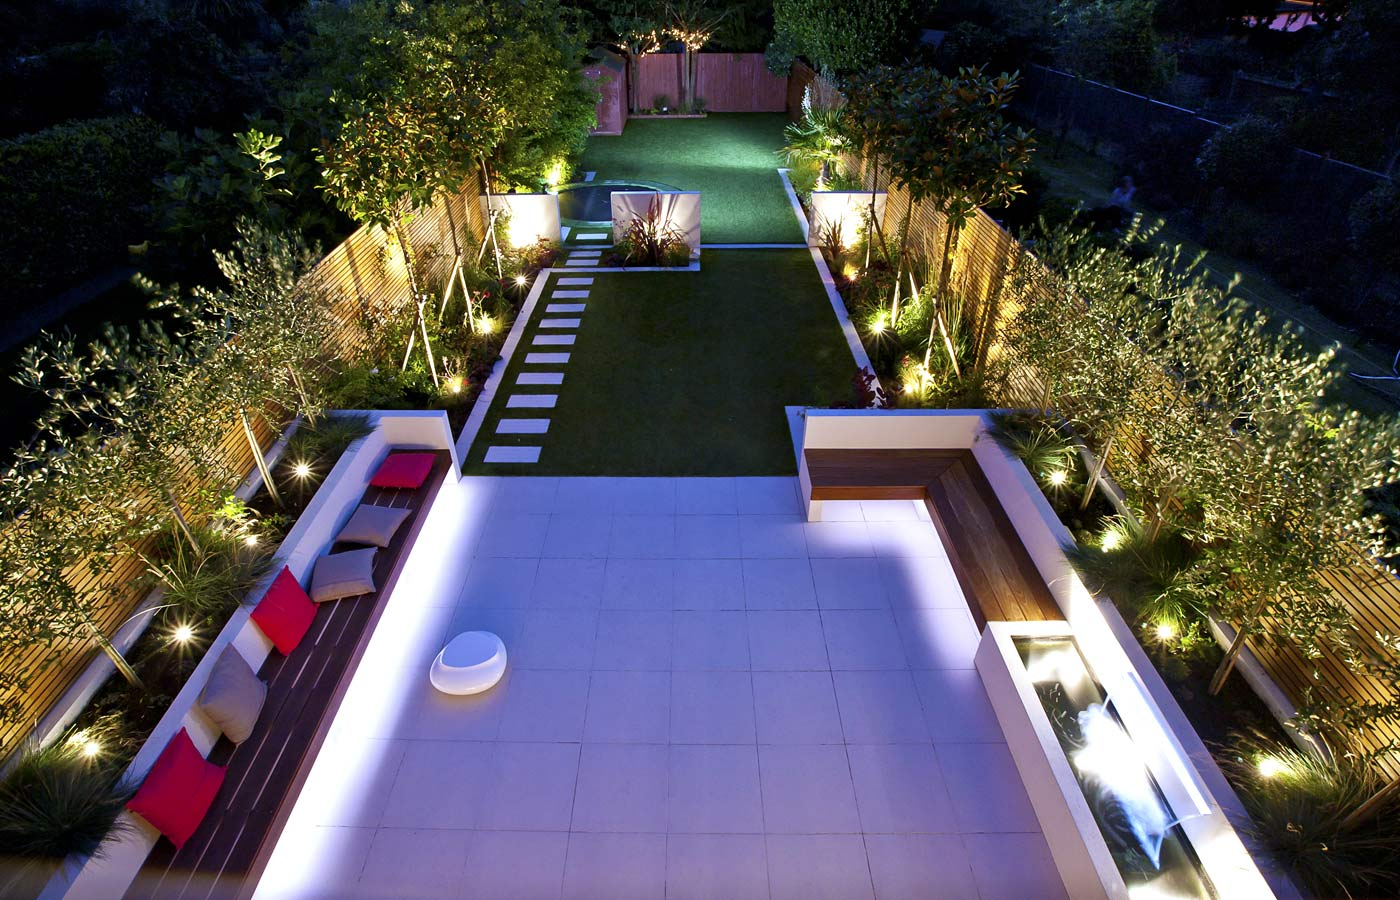 Long Thin Garden Design | Family Garden Design on Long Narrow Backyard Design Ideas id=95034